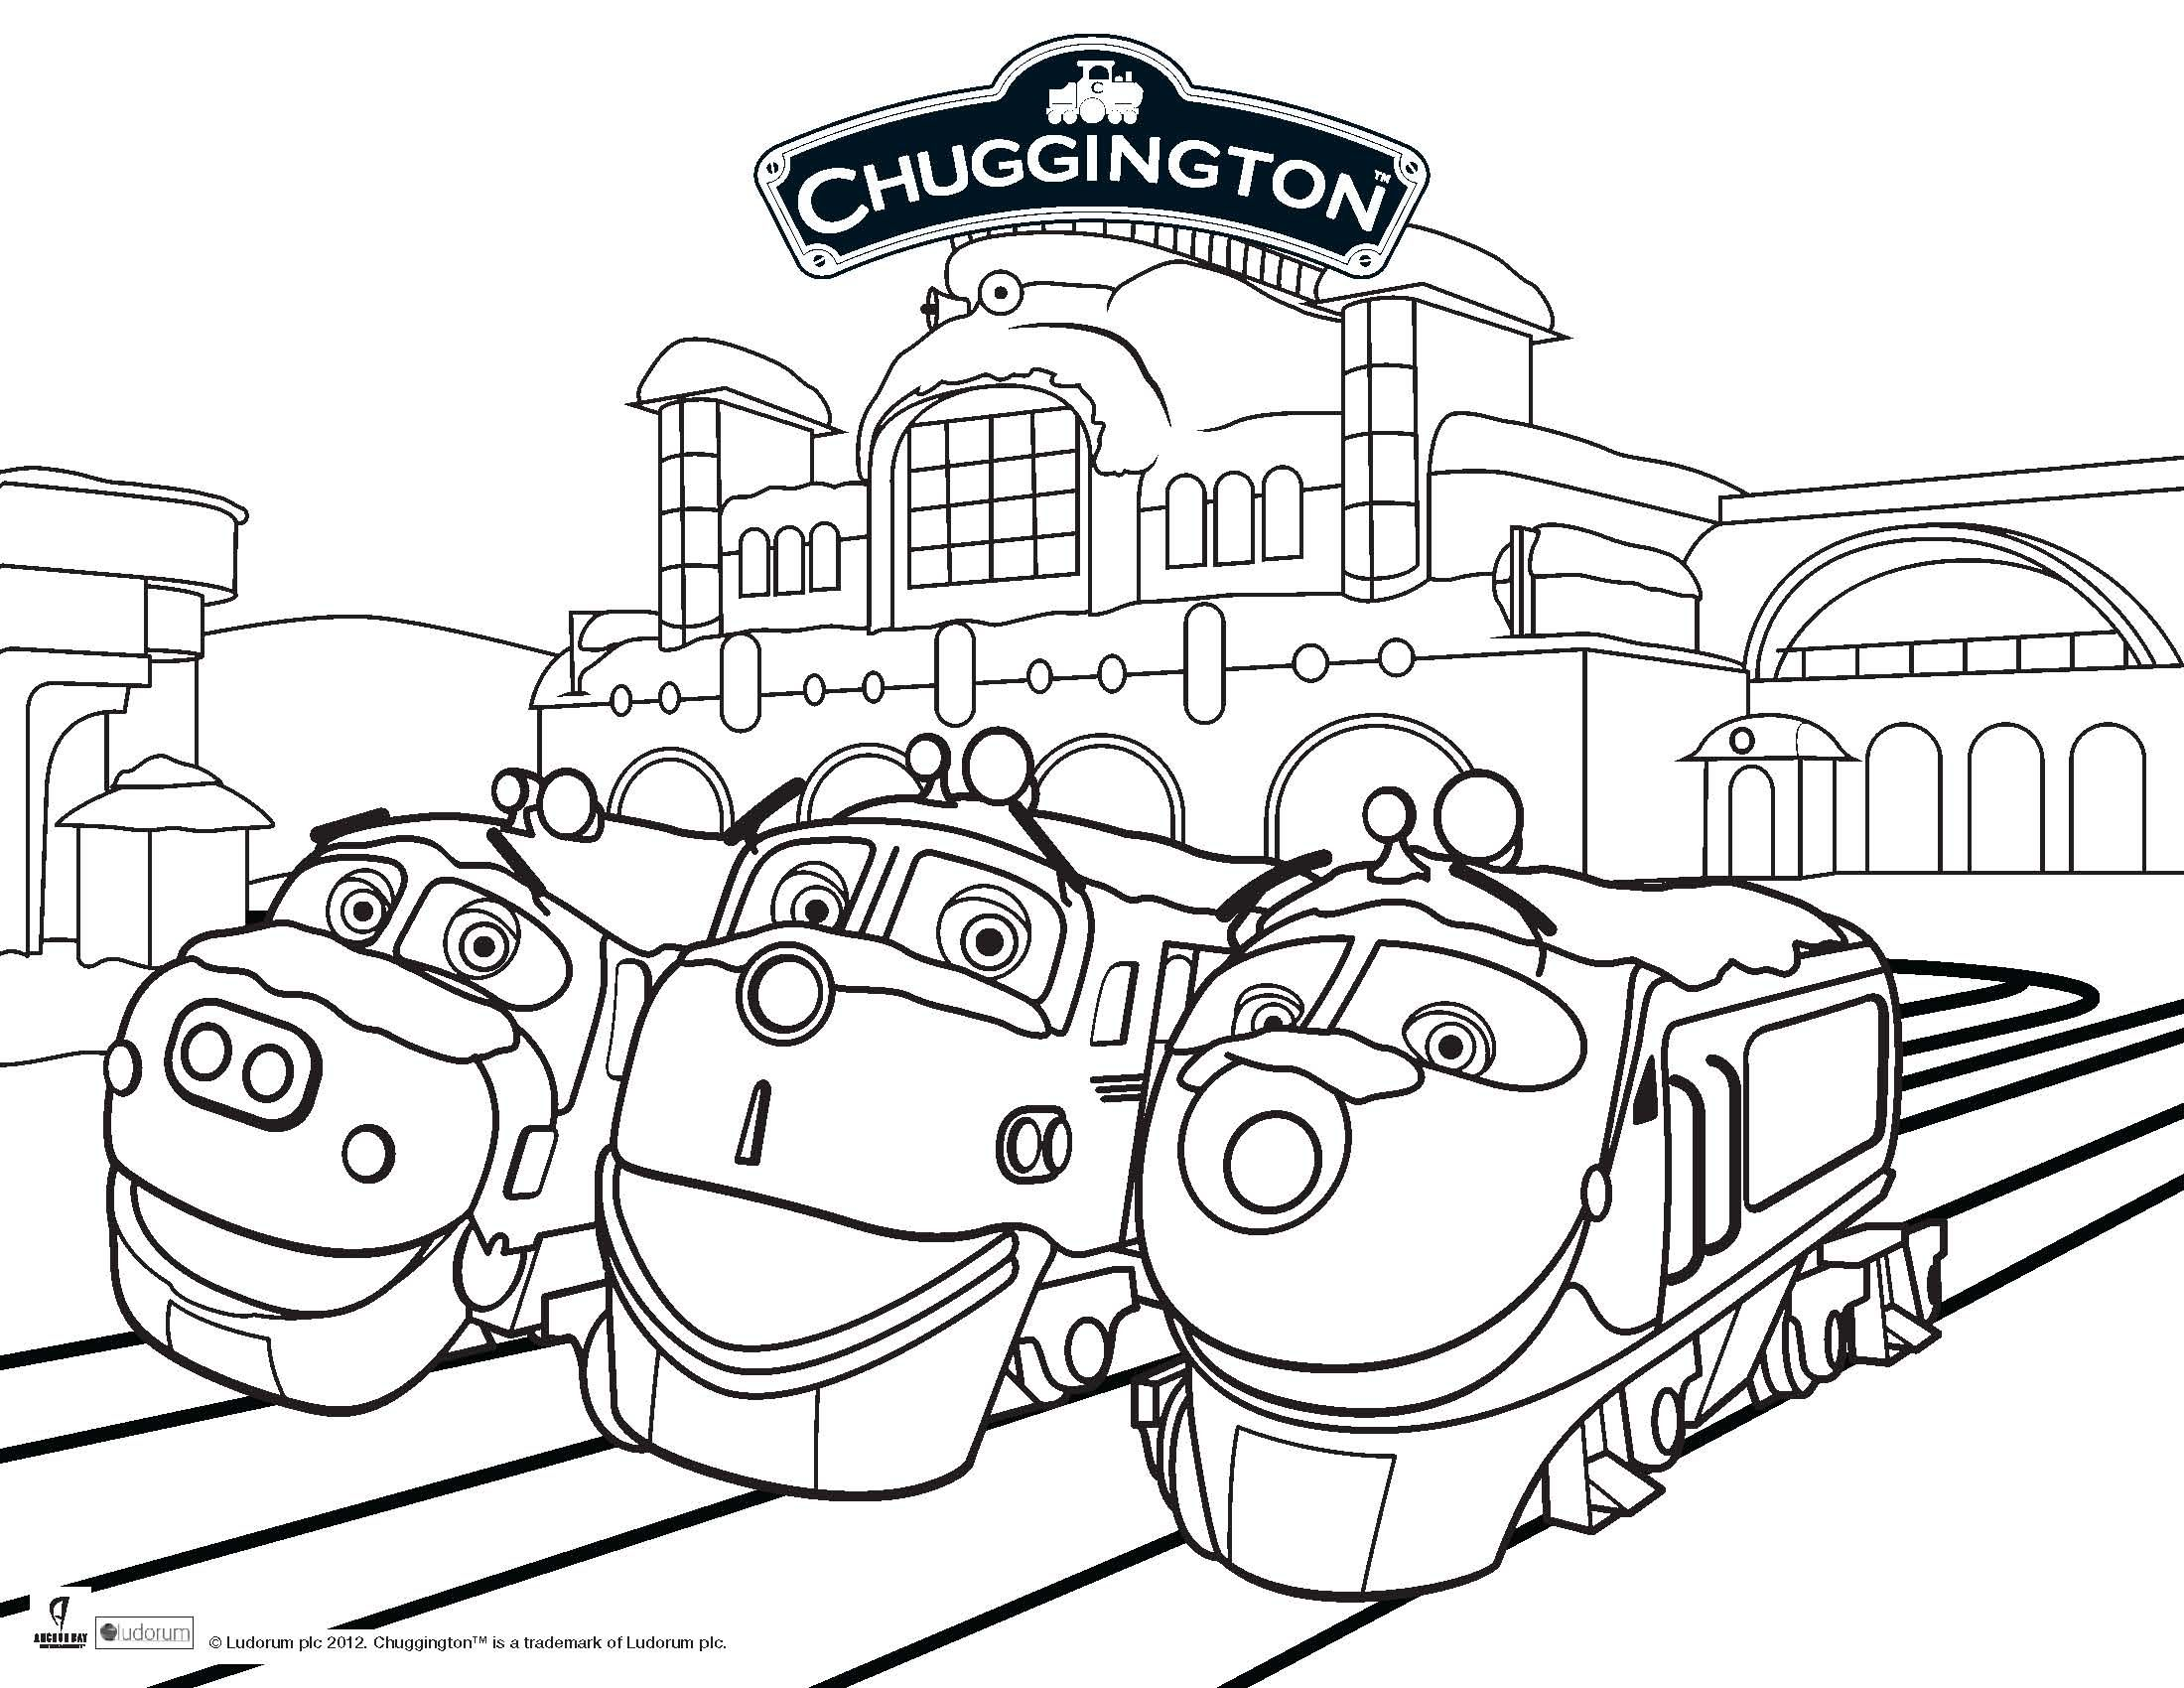 Calling All Children 12 Years And Younger Particiapte In Our Chuggington Coloring Competition